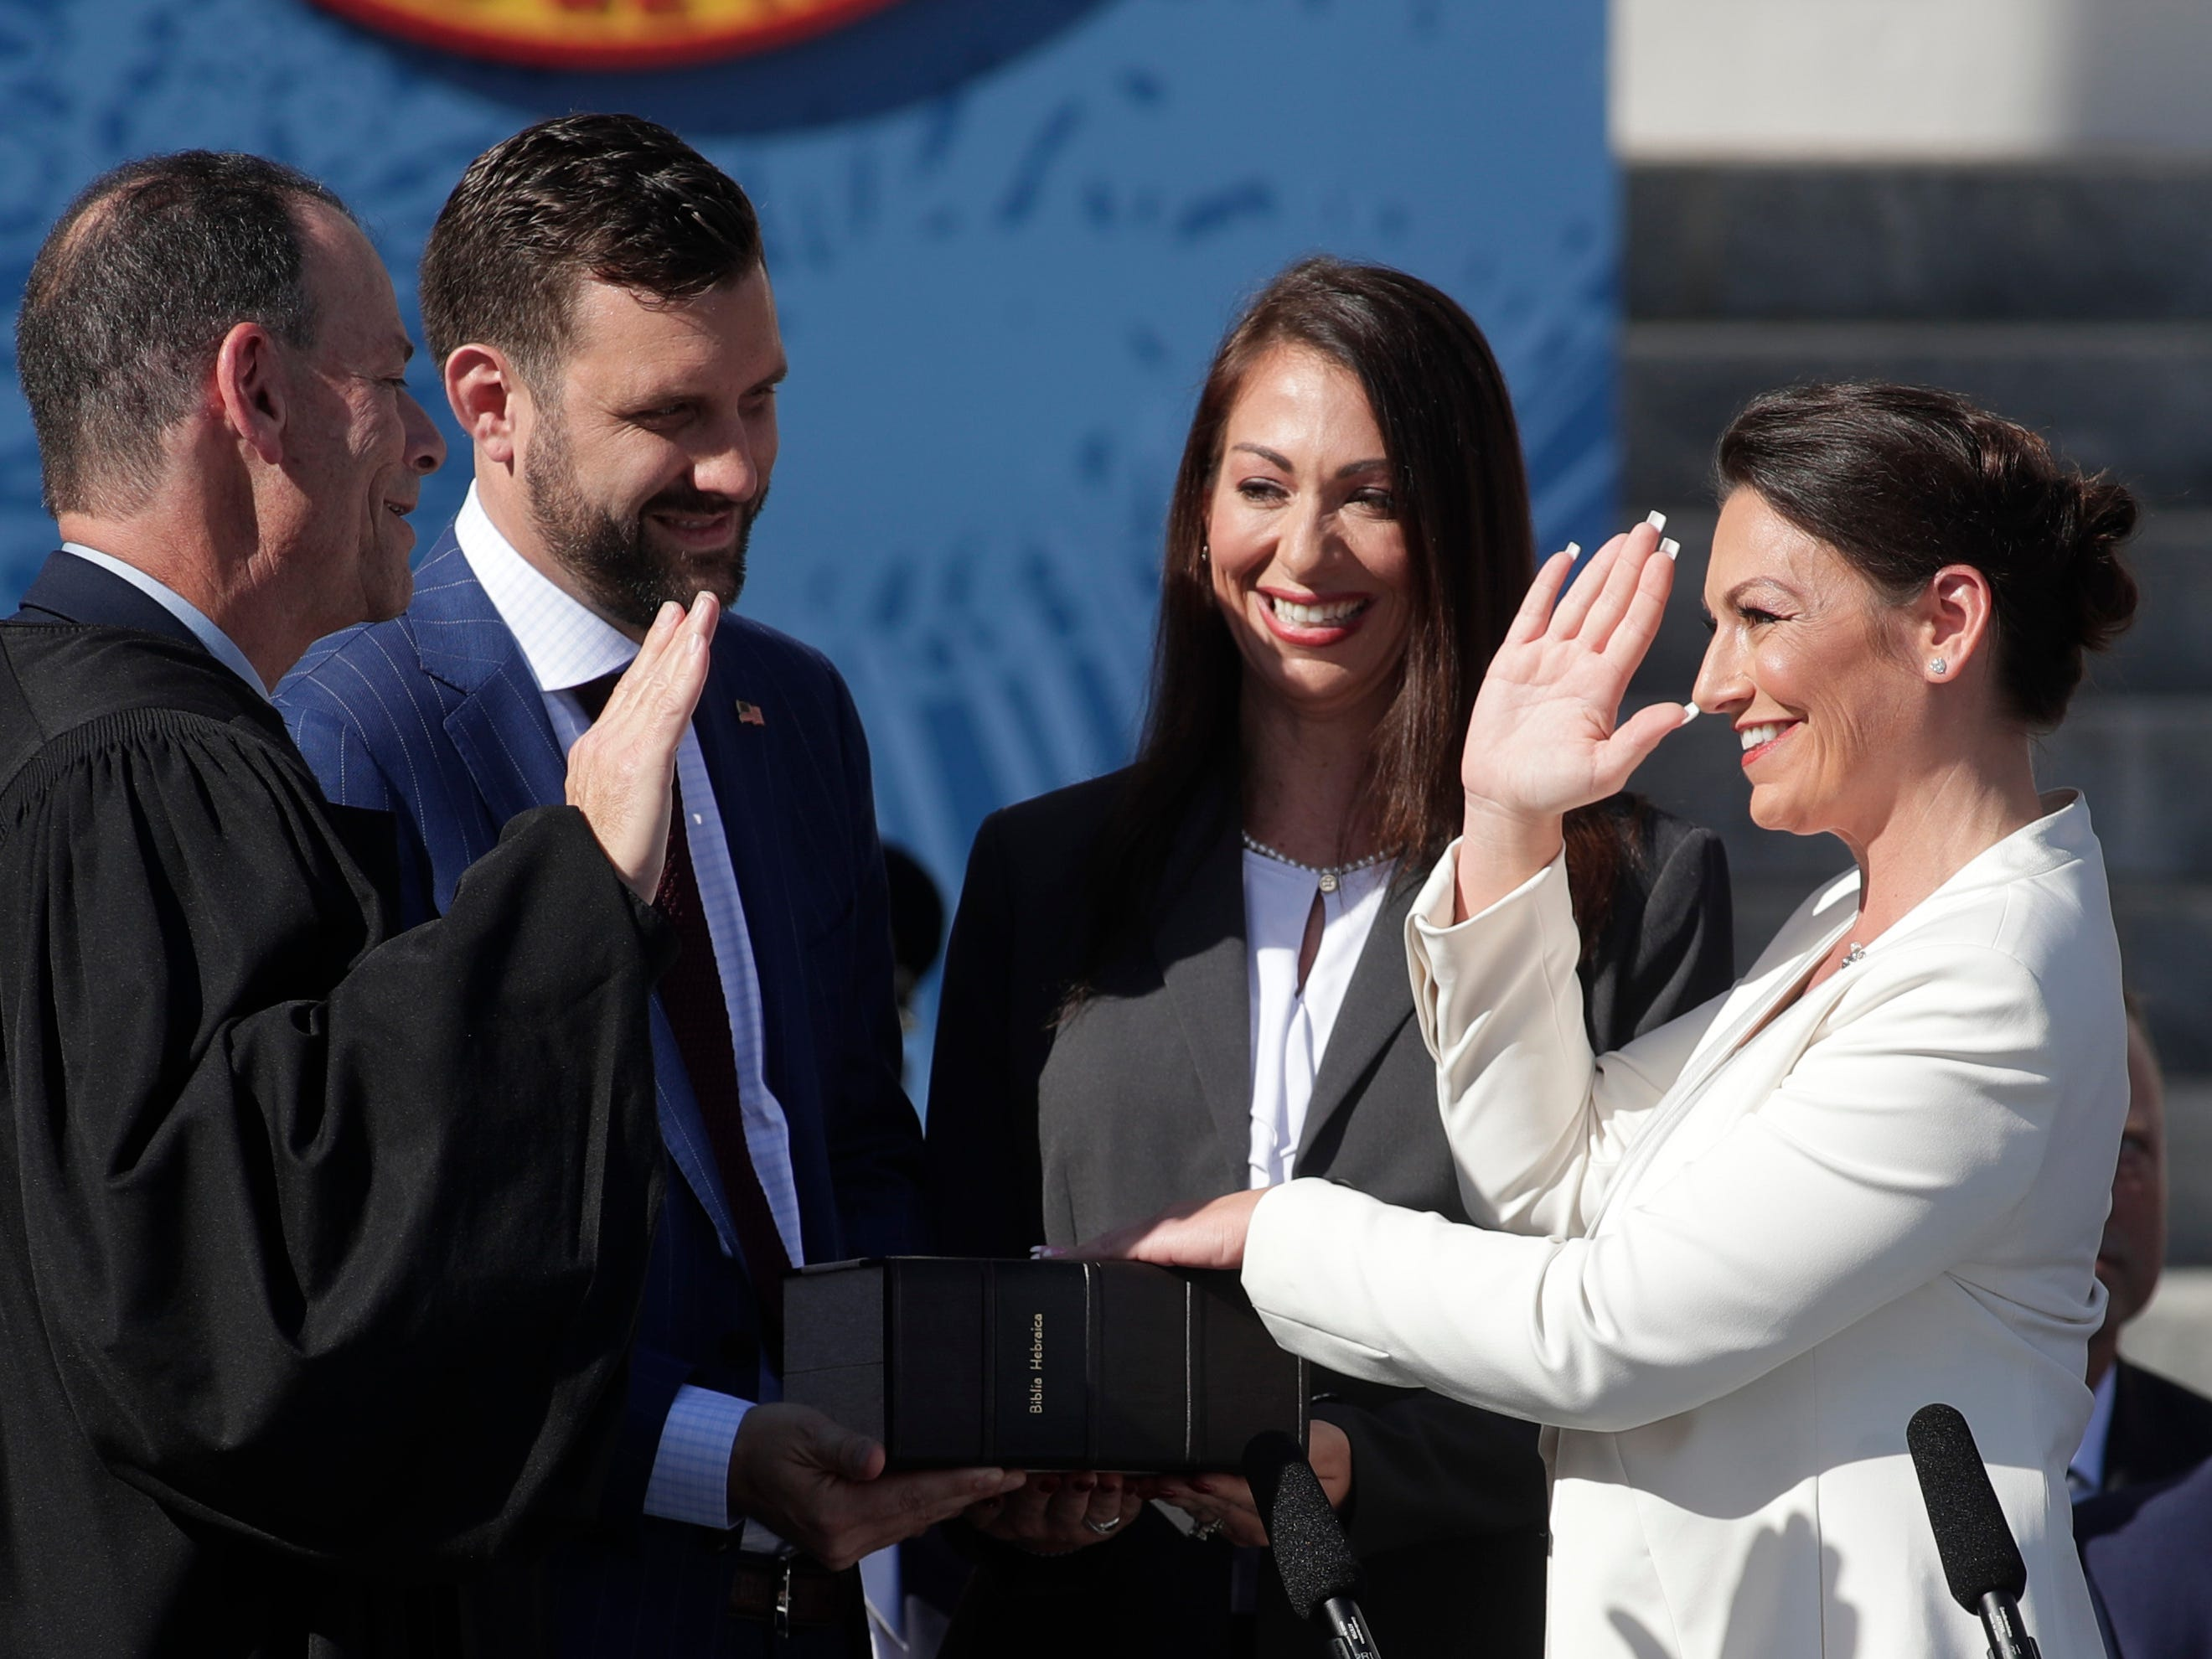 Commissioner of Agriculture and Consumer Services Nikki Fried is sworn in by Judge Kevin Emas with her partner, Jake Bergmann, and sister Jenni Shaffren during the 2019 inauguration ceremony on the steps of the Historic Capitol Building in Tallahassee on Tuesday, Jan. 8, 2019.